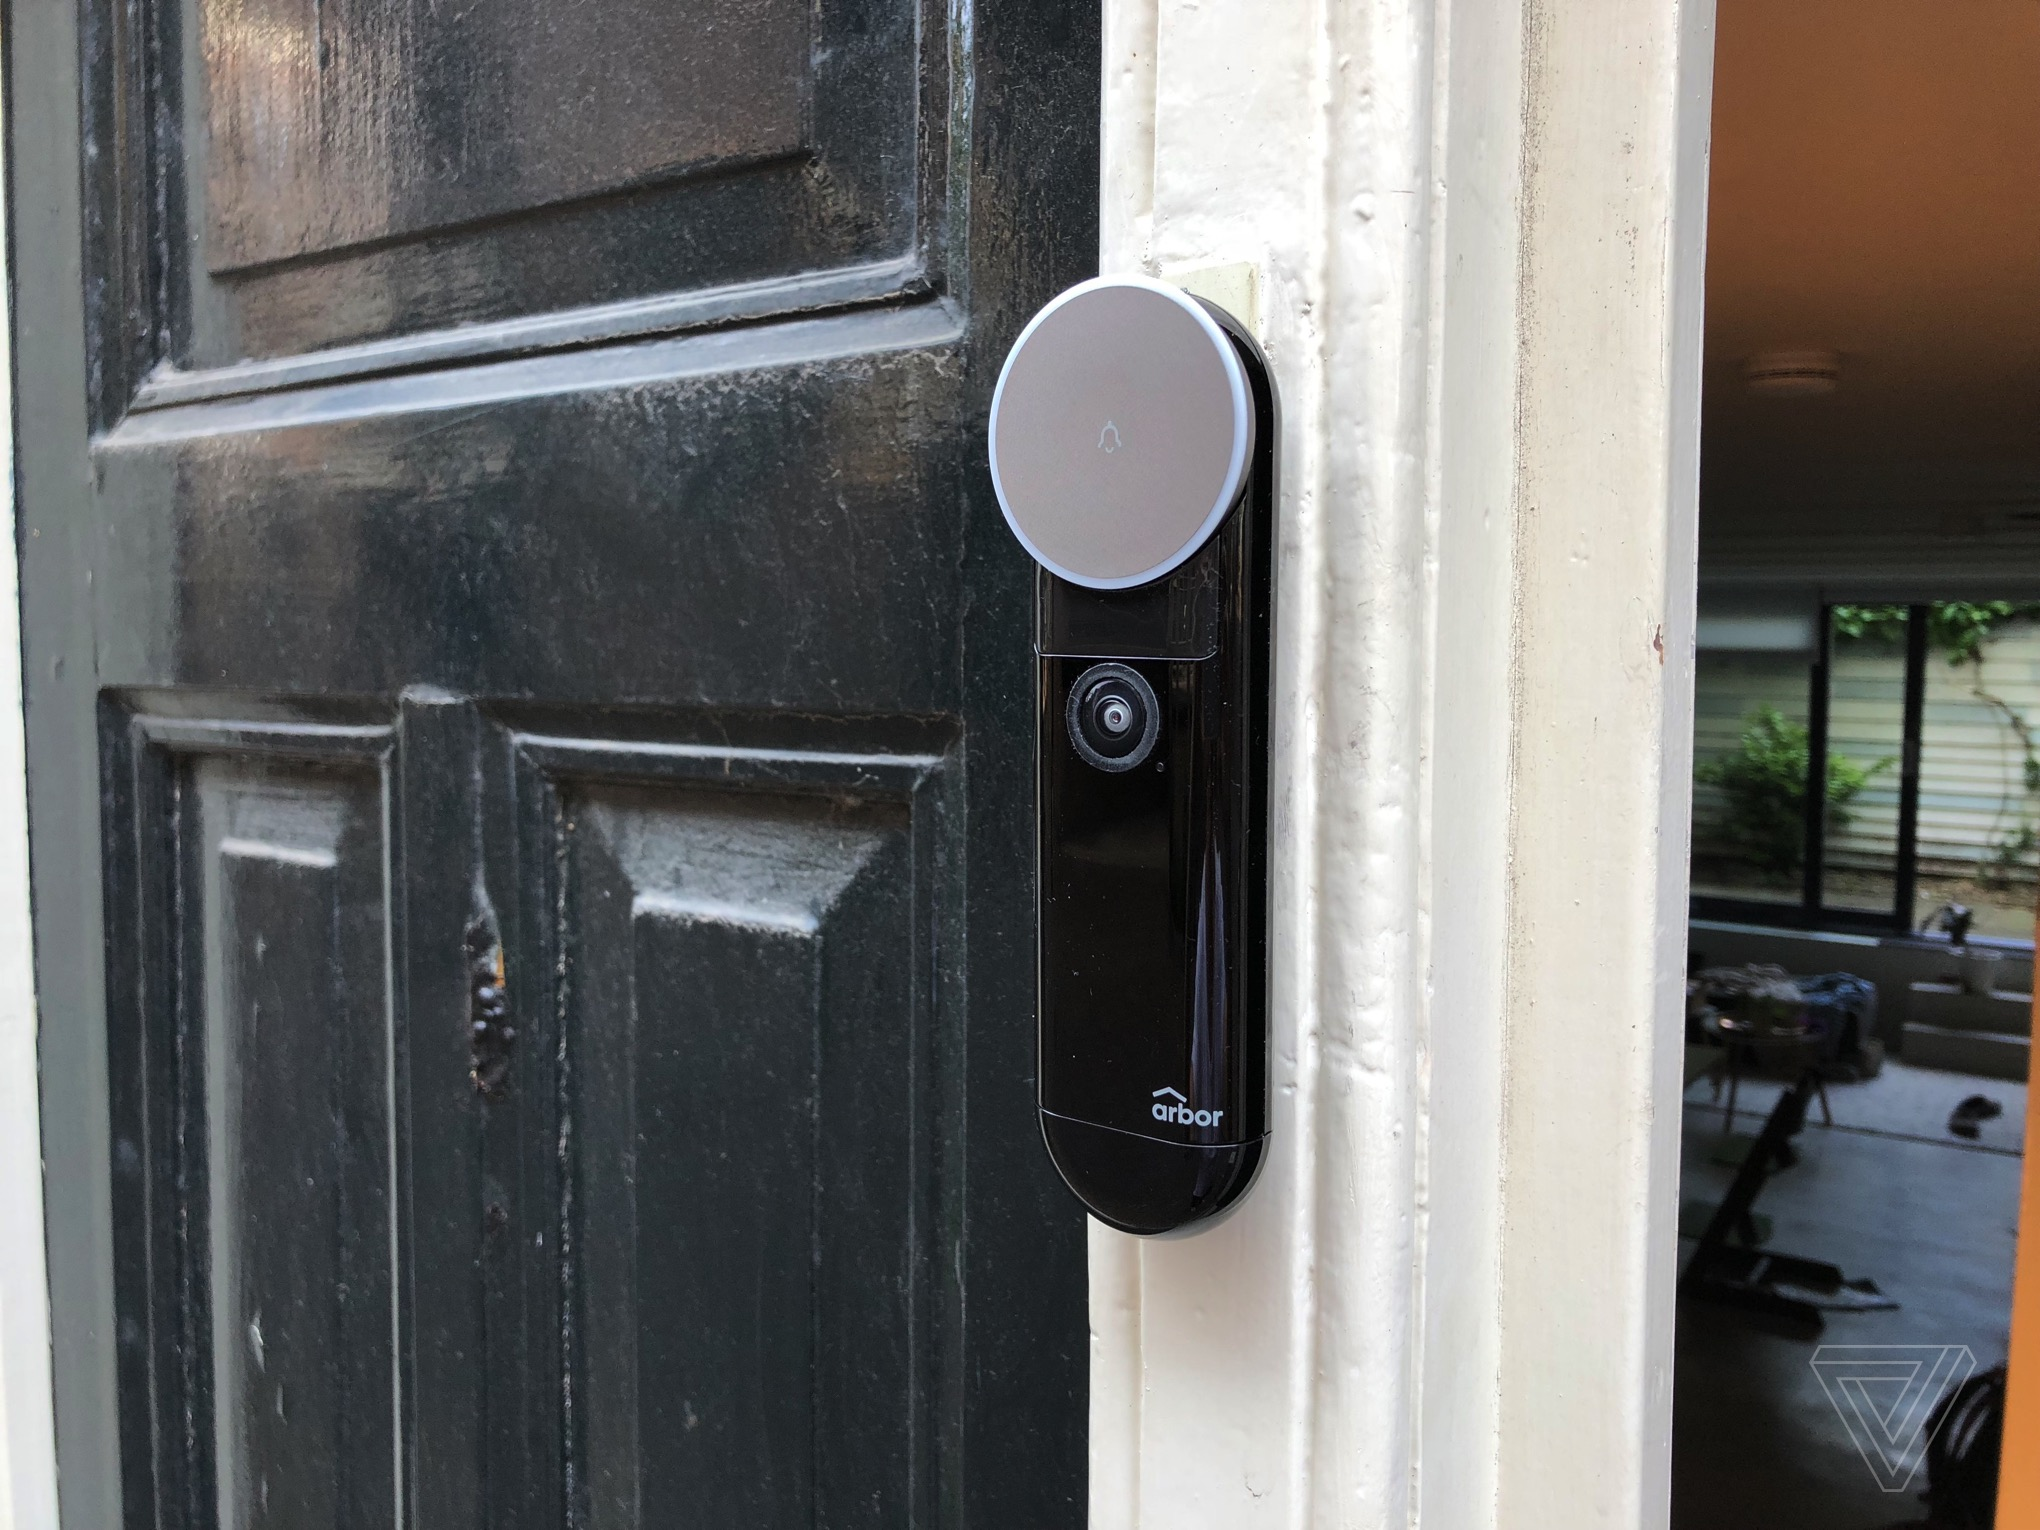 The Arbor Video Doorbell Offers More Than Ring For Less Verge Two Door Buzzer With Display Thomas Ricker